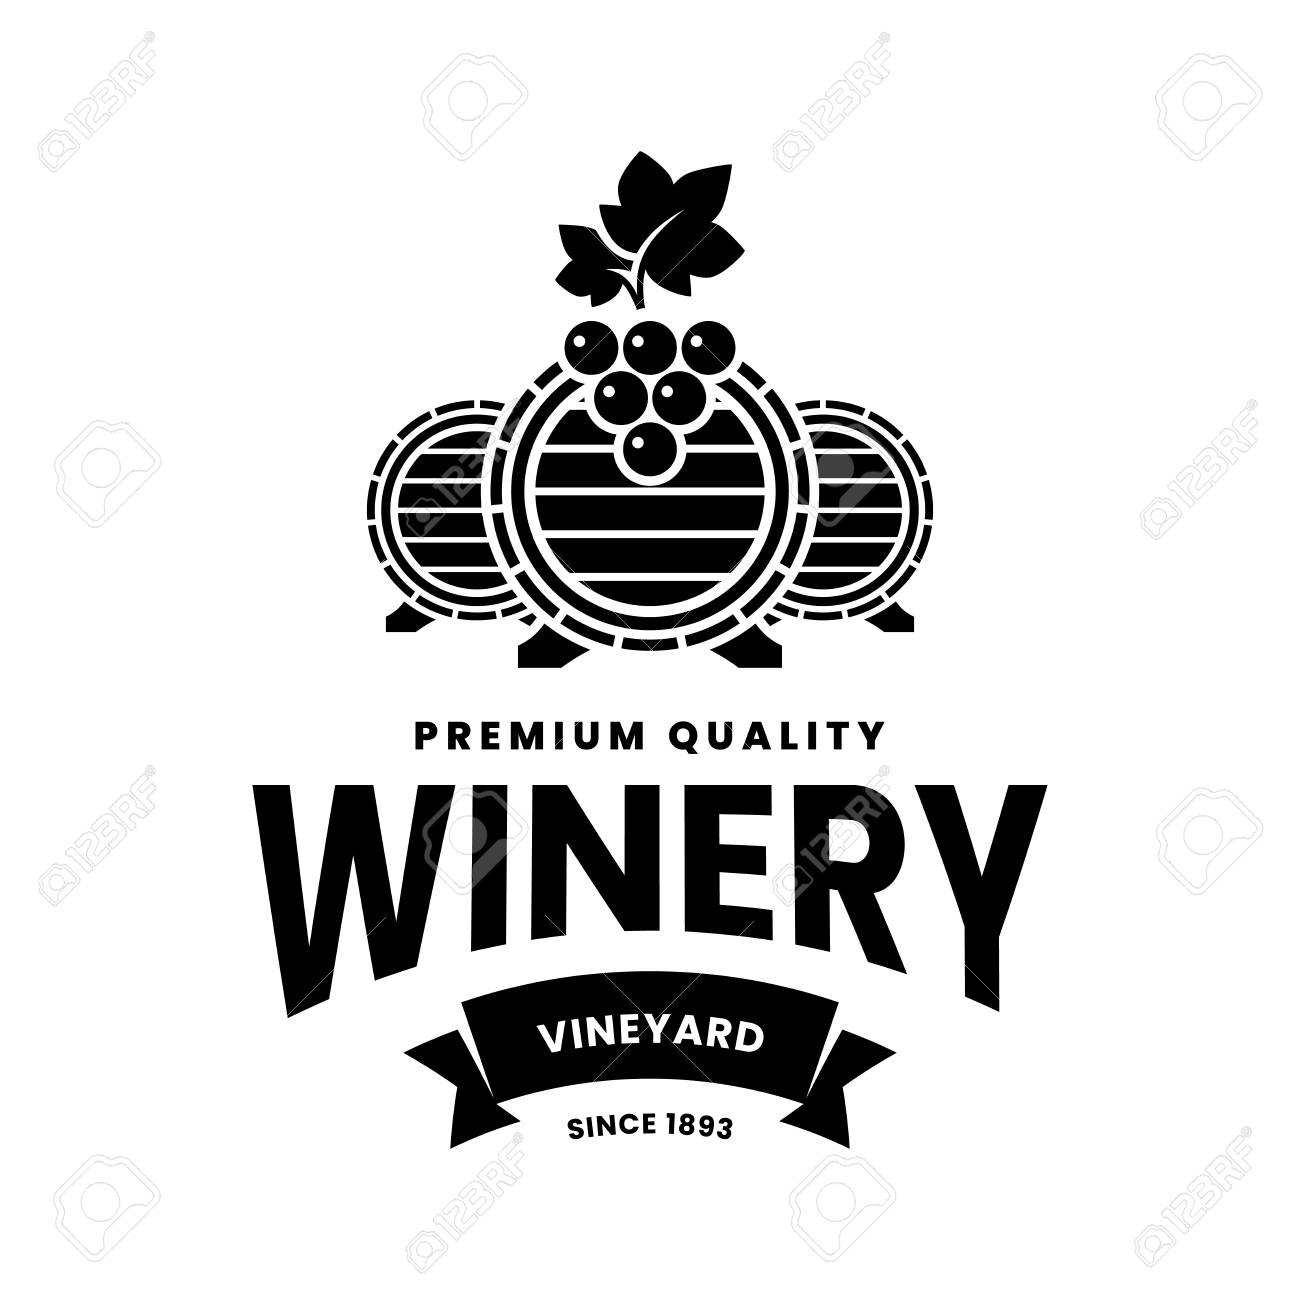 Modern wine vector logo sign for tavern, restaurant, house, shop, store, club and cellar isolated on white background. Premium quality vinery logotype illustration. Fashion brand badge design template. - 126106197